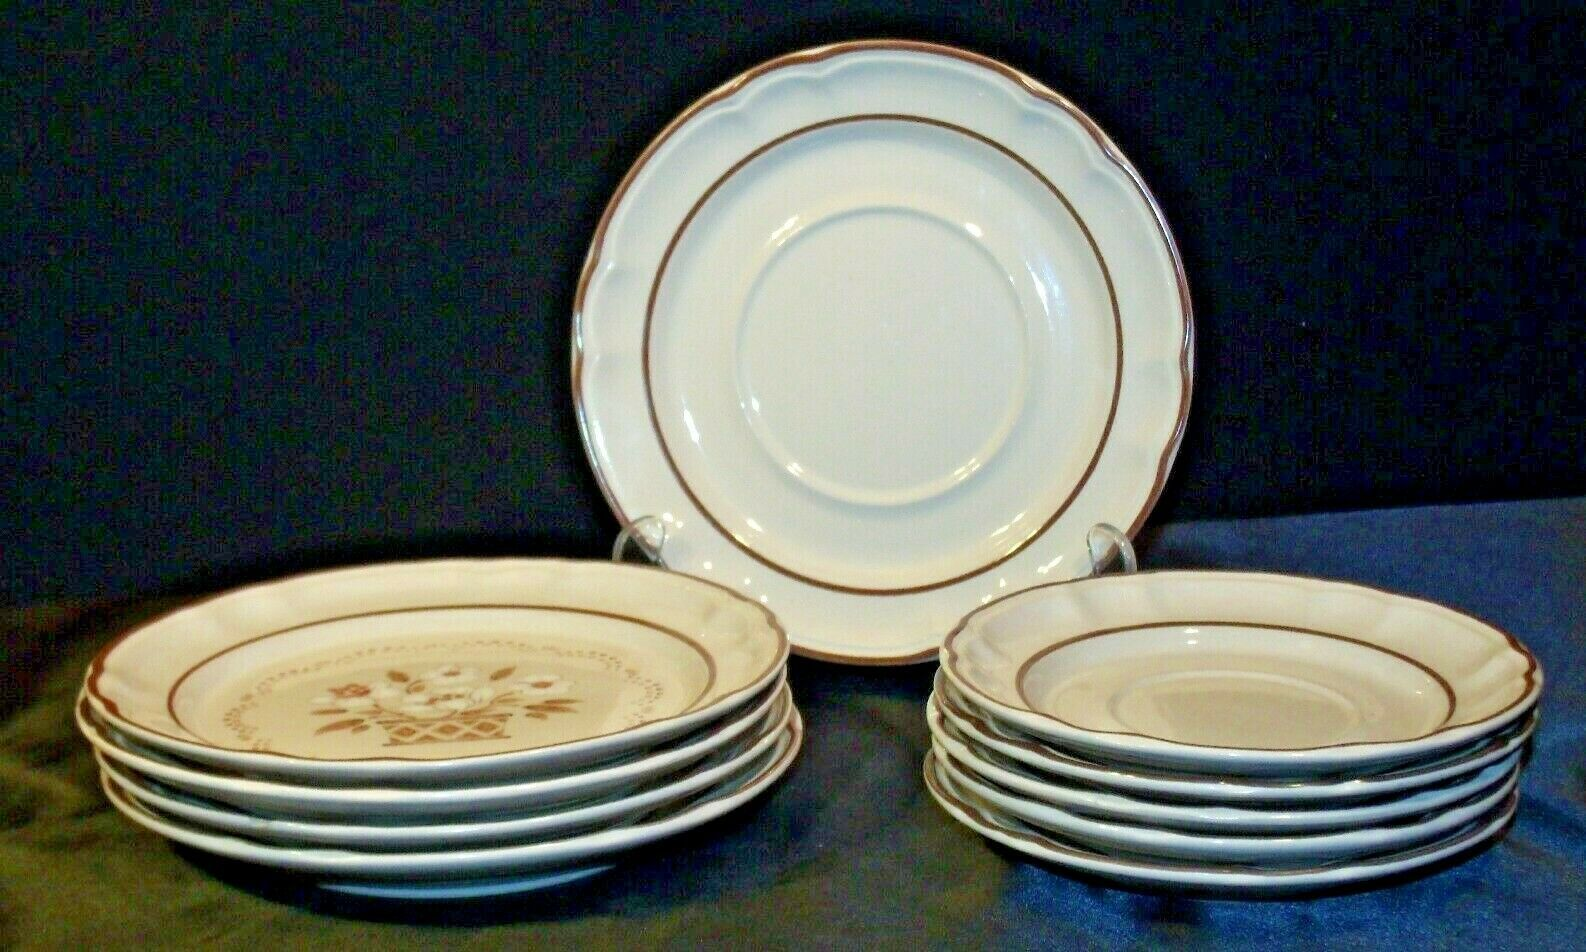 Stoneware Cumberland Mayblossom Dessert Plate by Hearthside AA-192035-A Vintage